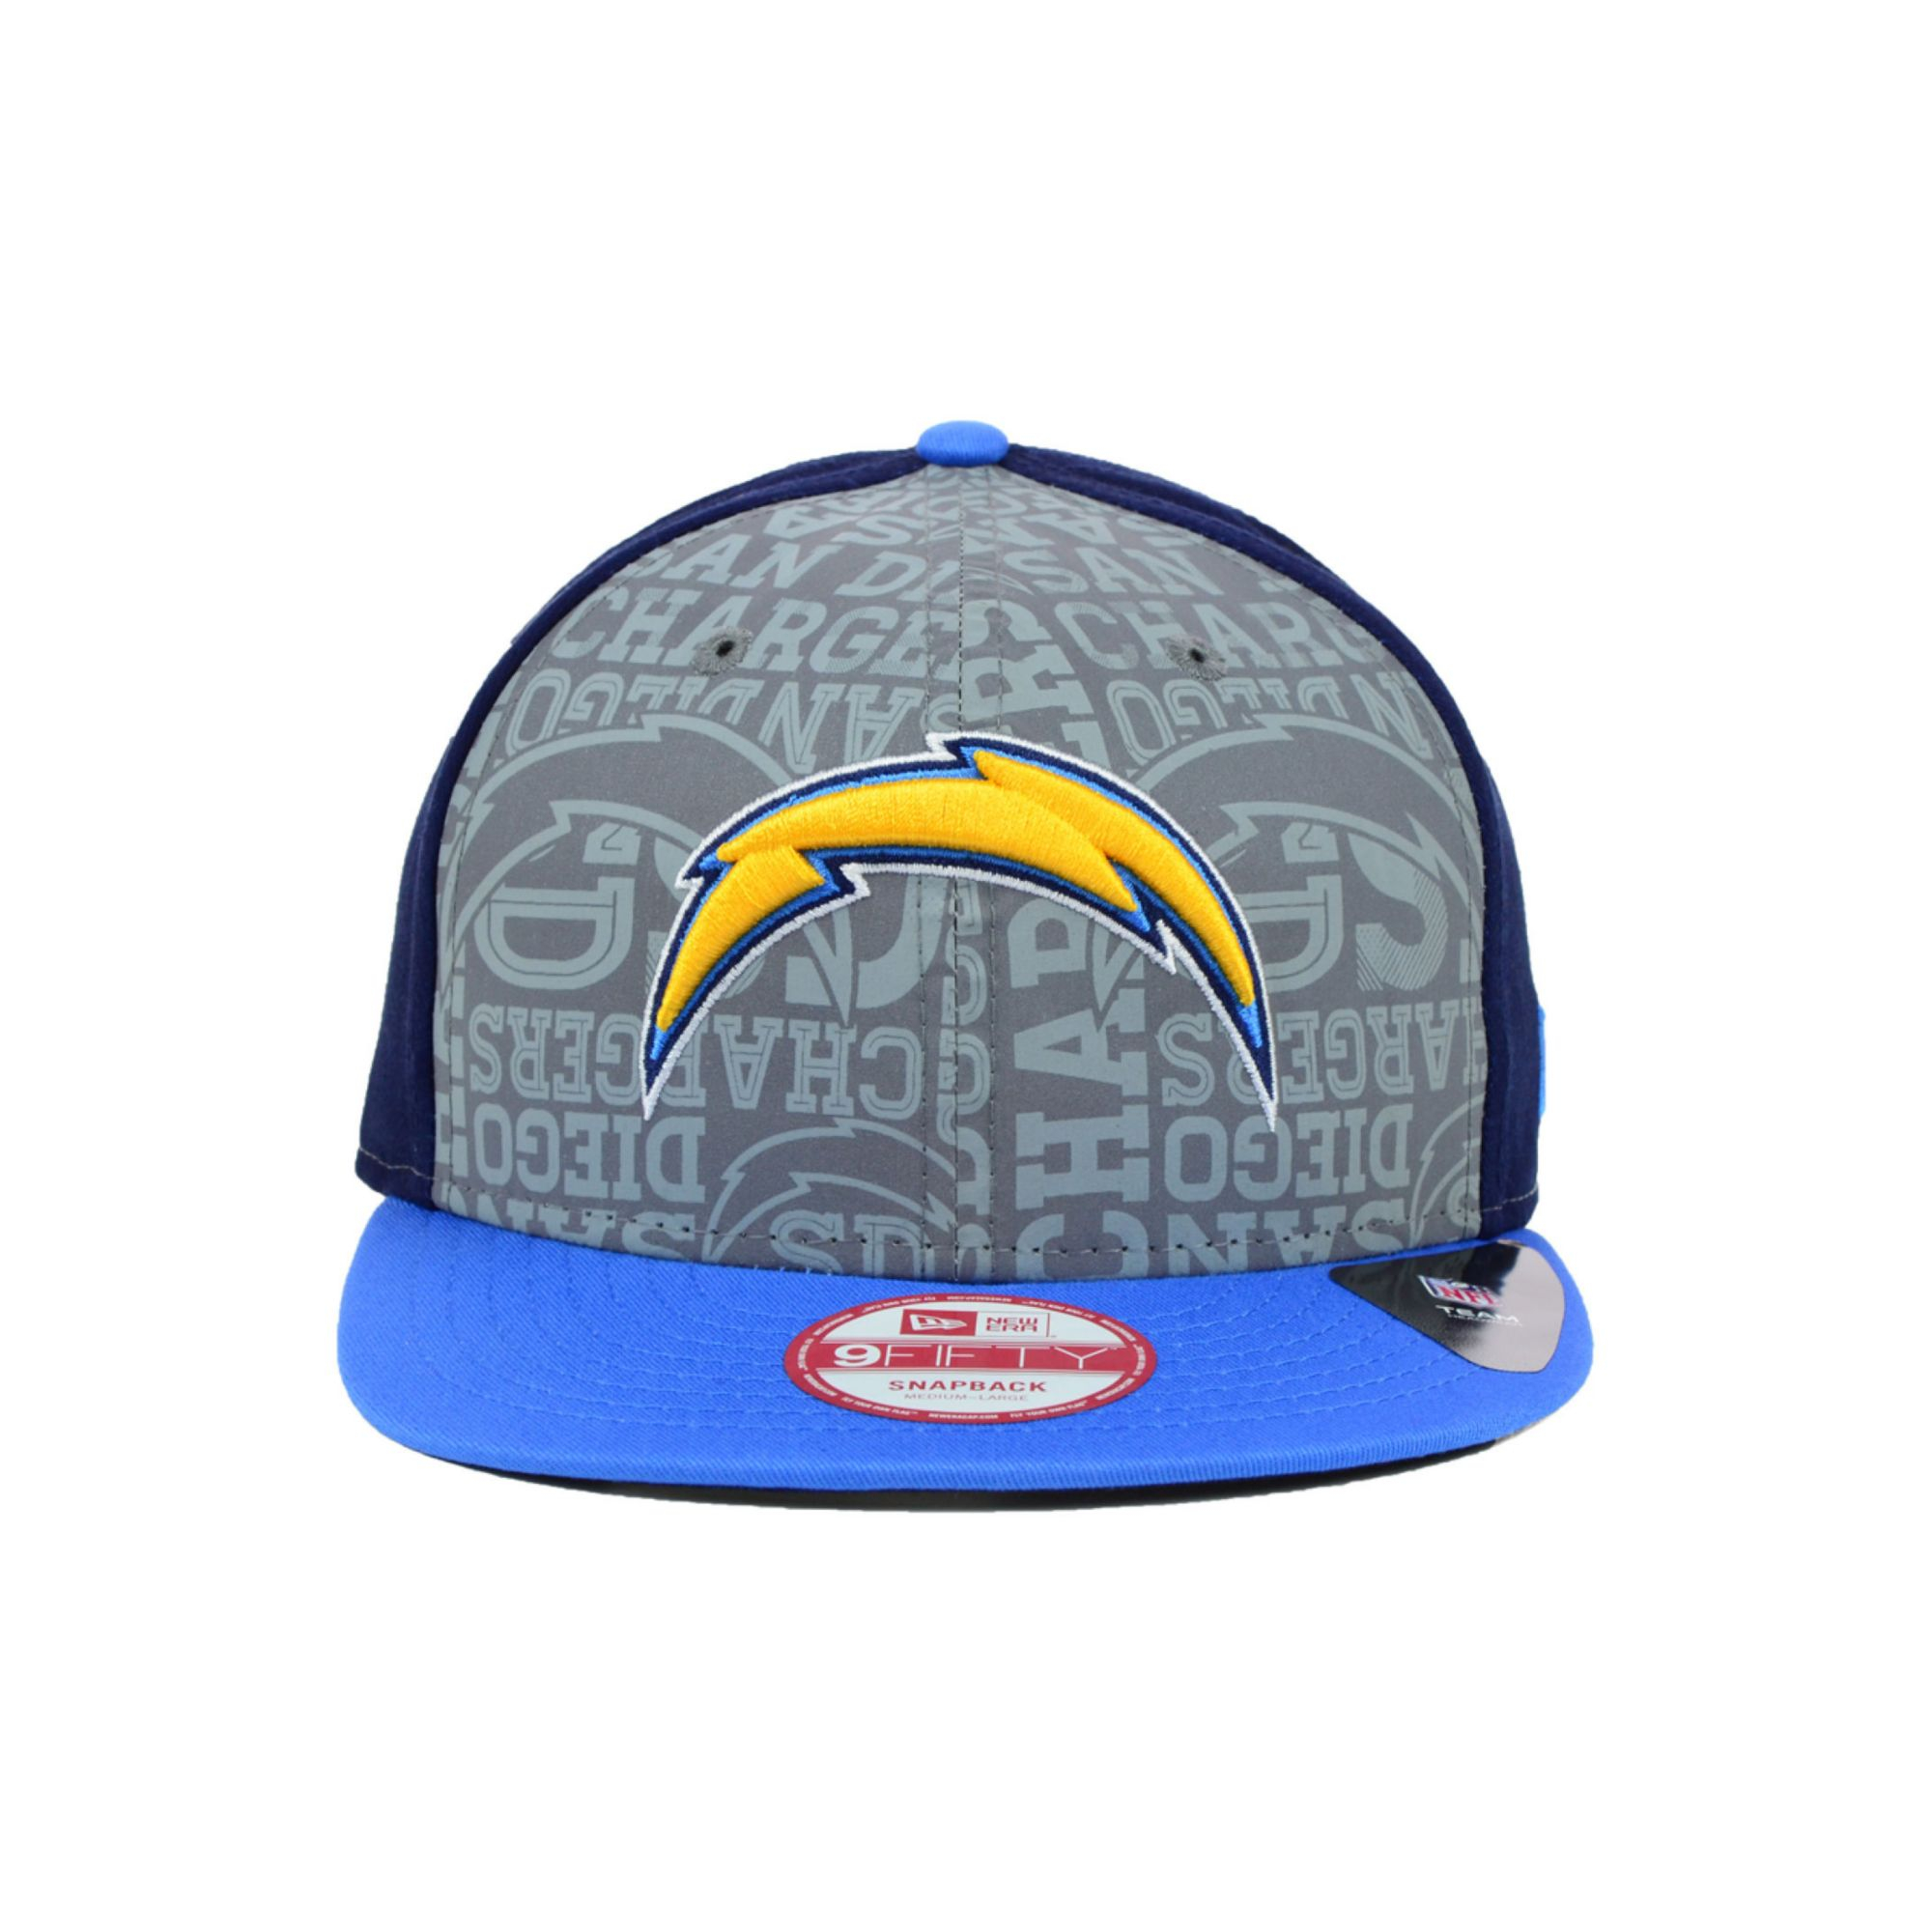 San Diego Chargers Draft: New Era Kids San Diego Chargers Nfl Draft 9fifty Snapback